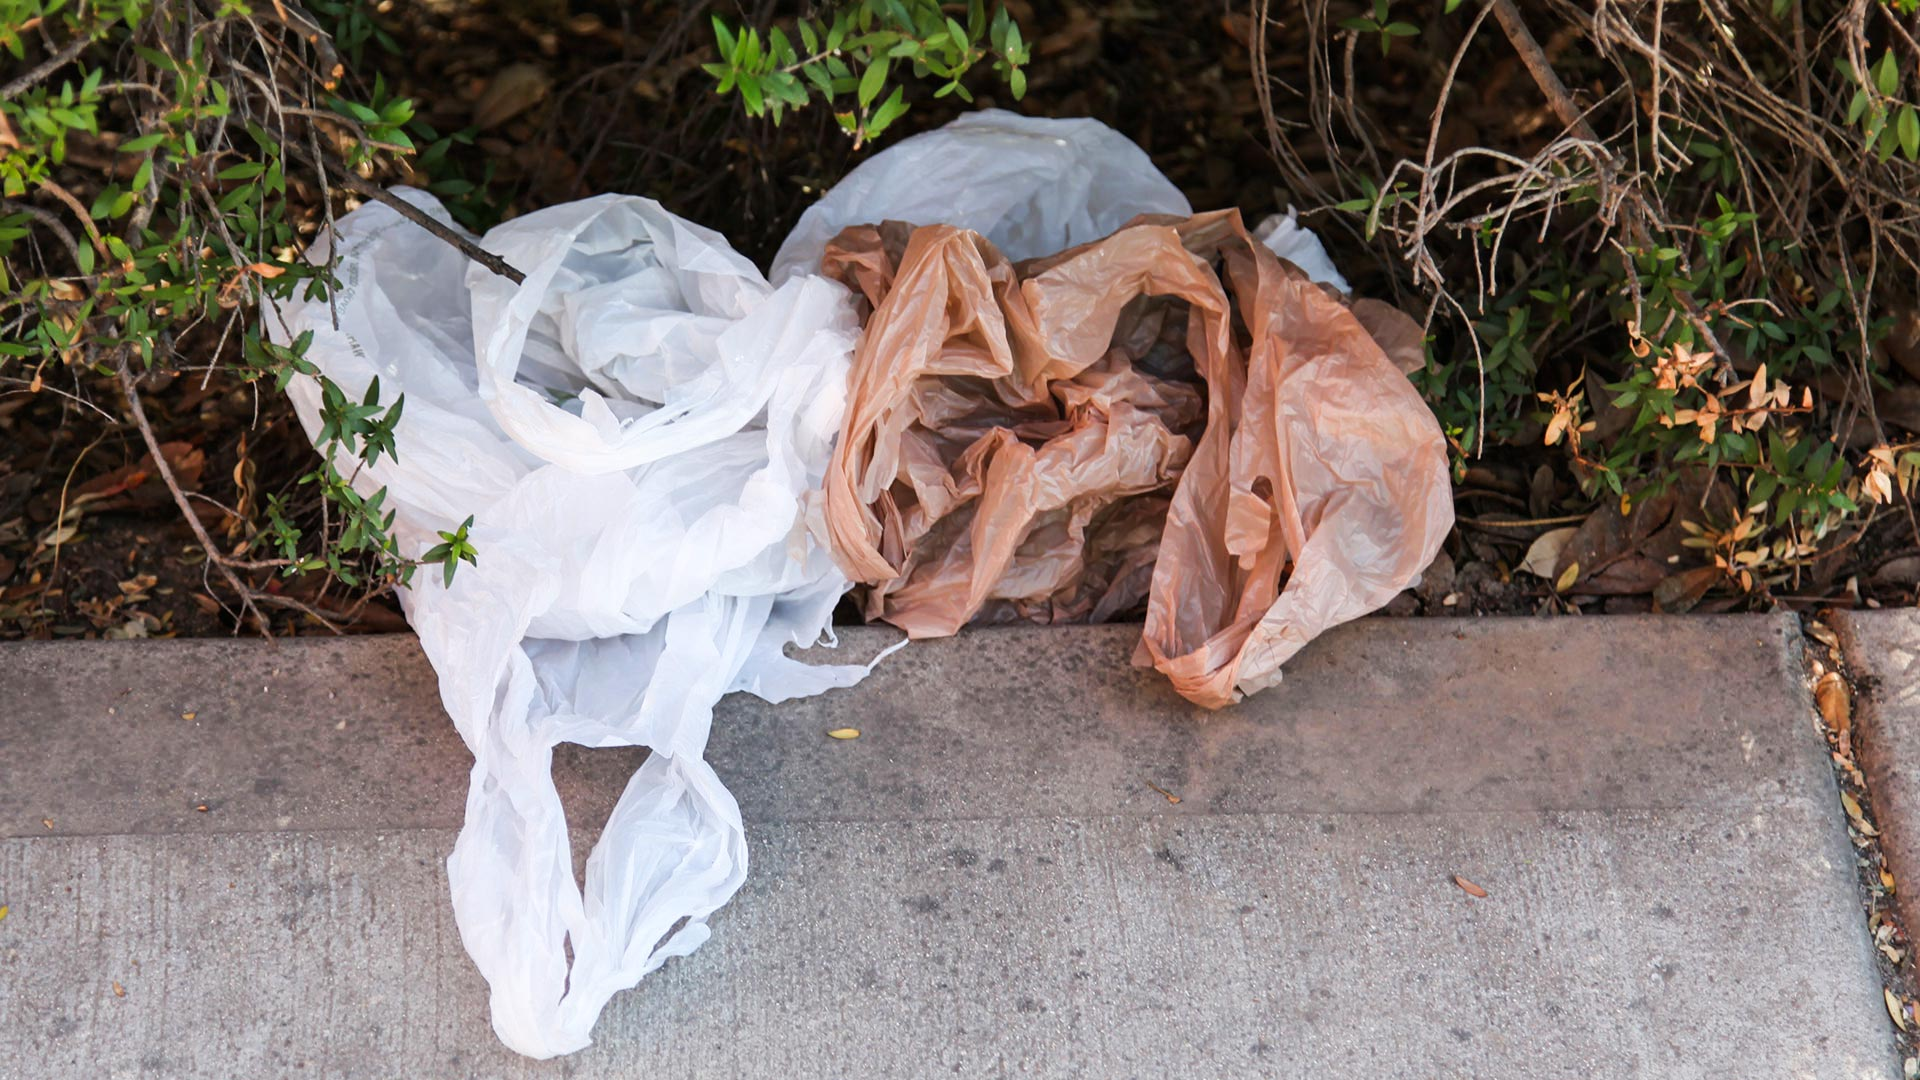 Plastic bags often litter many urban and rural areas around the world.